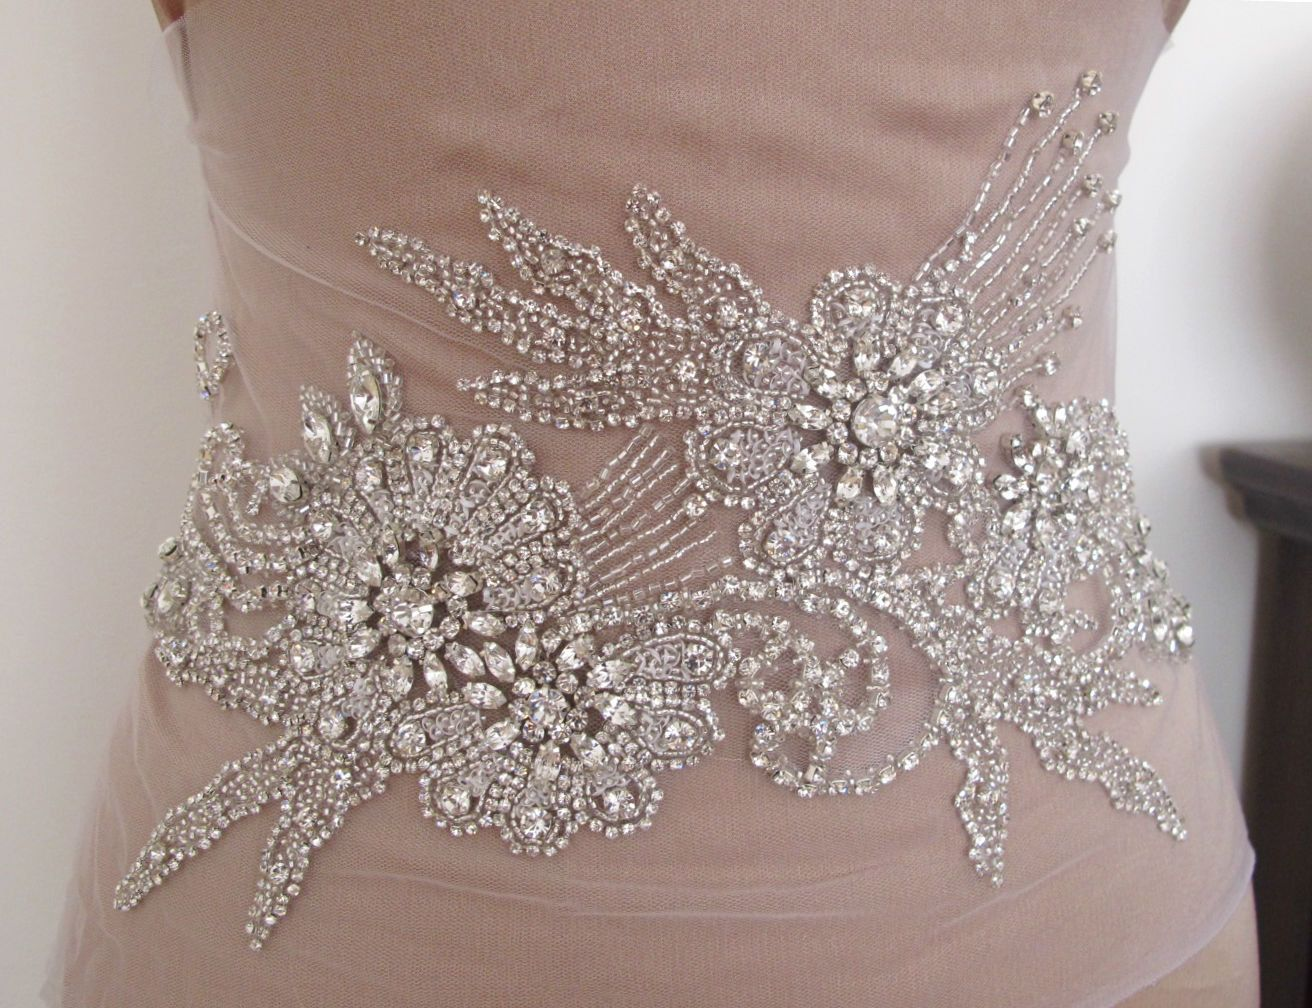 Rhinestone applique for wedding dress bridal gown applique for Rhinestone sashes for wedding dresses